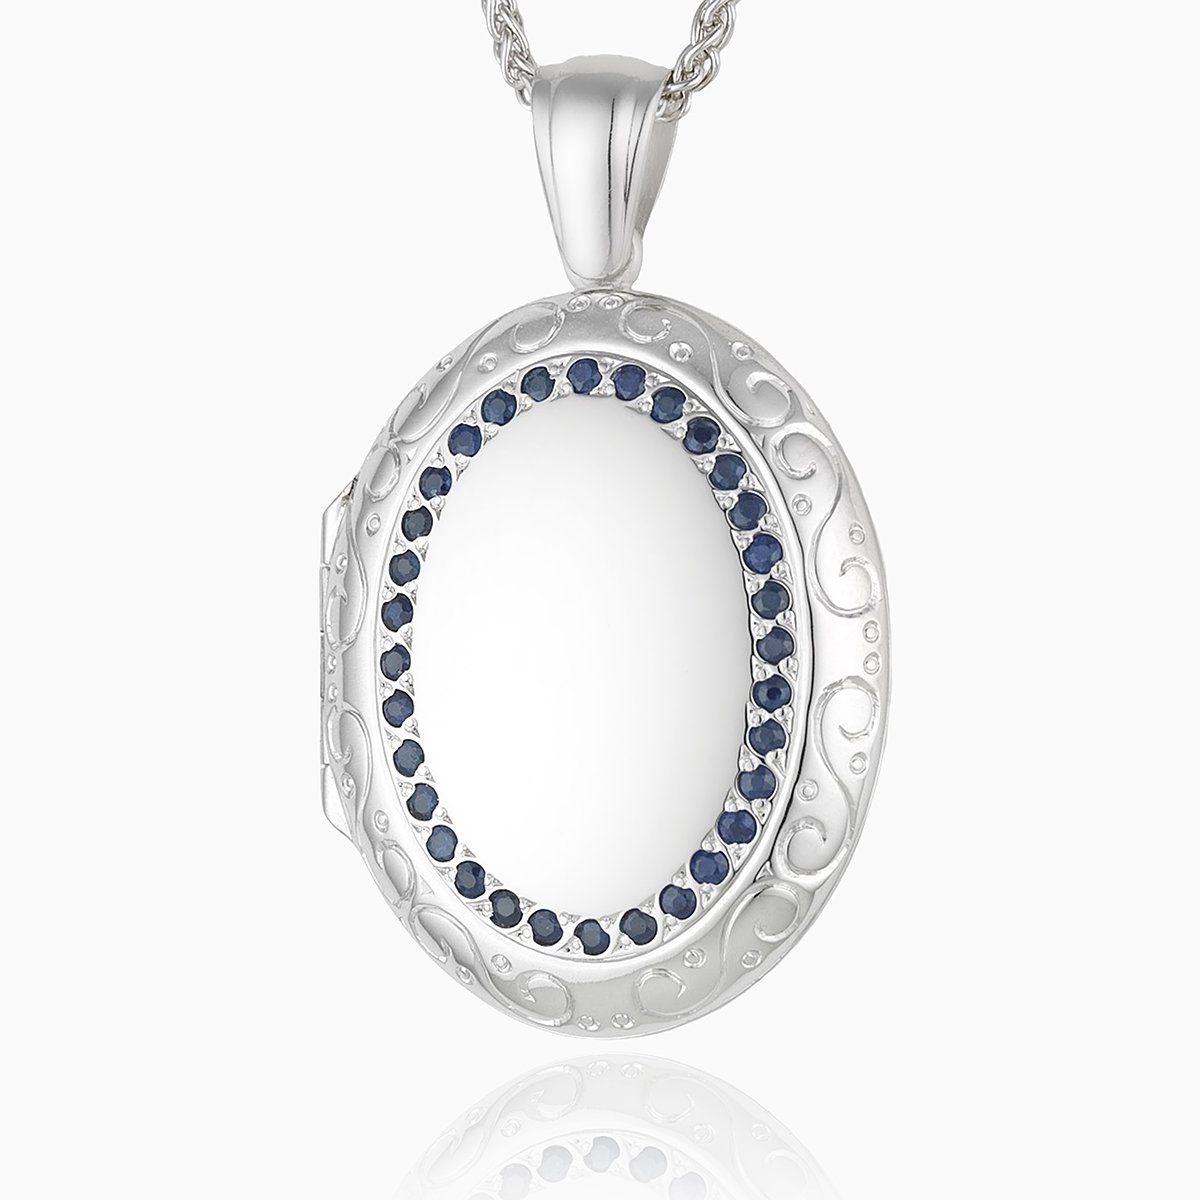 Product title: 18 ct White Gold Sapphire Family Locket, product type: Locket